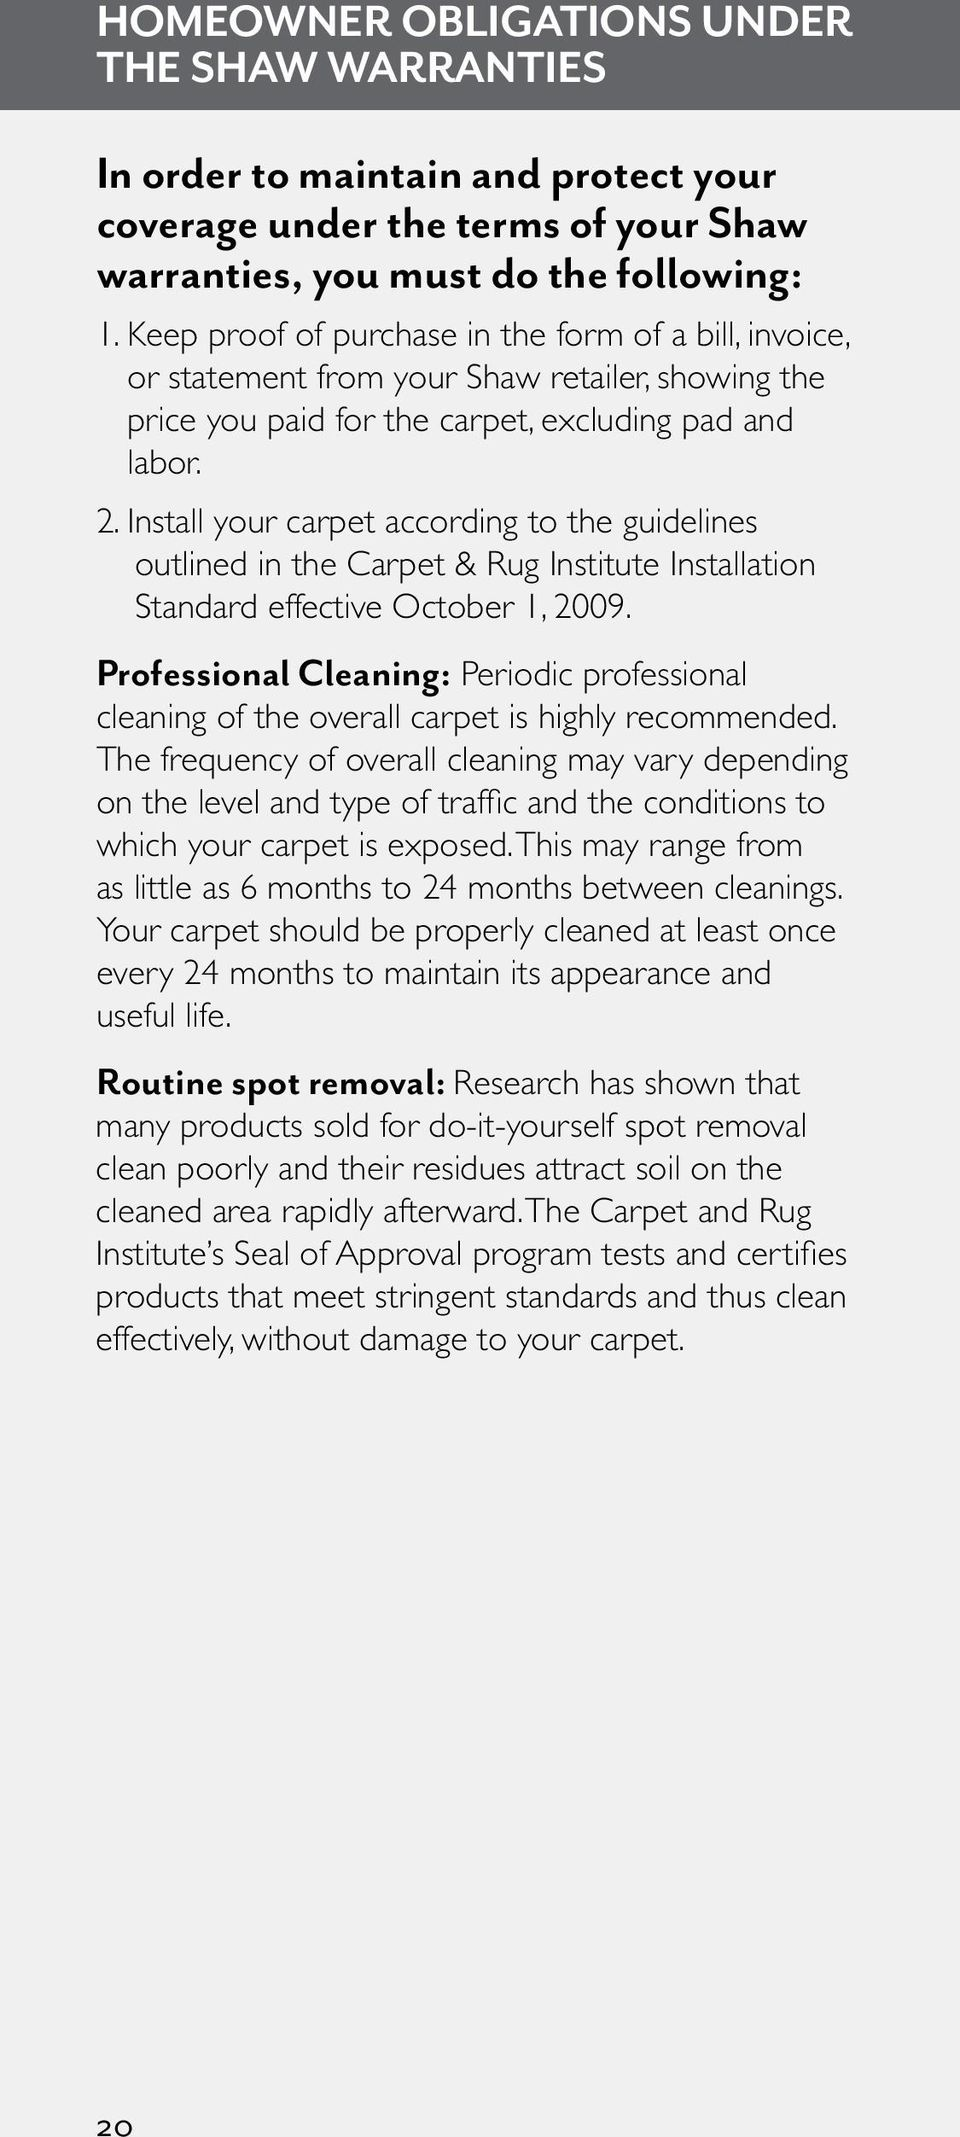 I nstall your carpet according to the guidelines outlined in the Carpet & Rug Institute Installation Standard effective October 1, 2009.